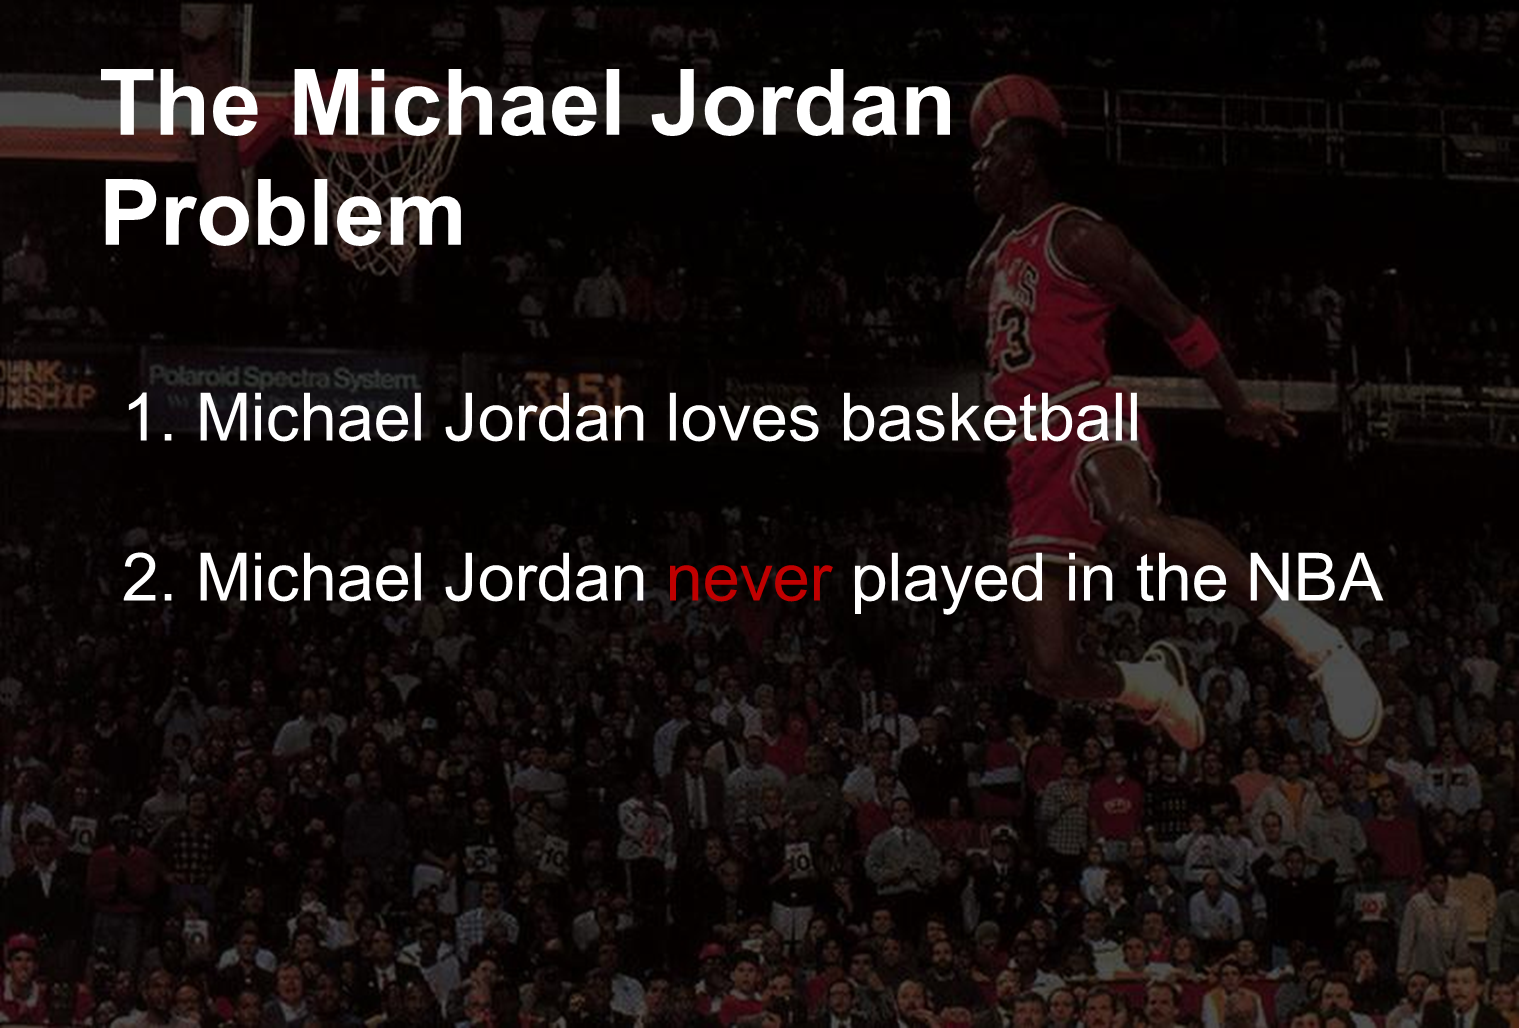 michael jordan research paper thesis Outline of michael jordan thesis: michael jordan was the greatest basketball player in the nba i michael jordan type of paper: thesis/dissertation chapter.